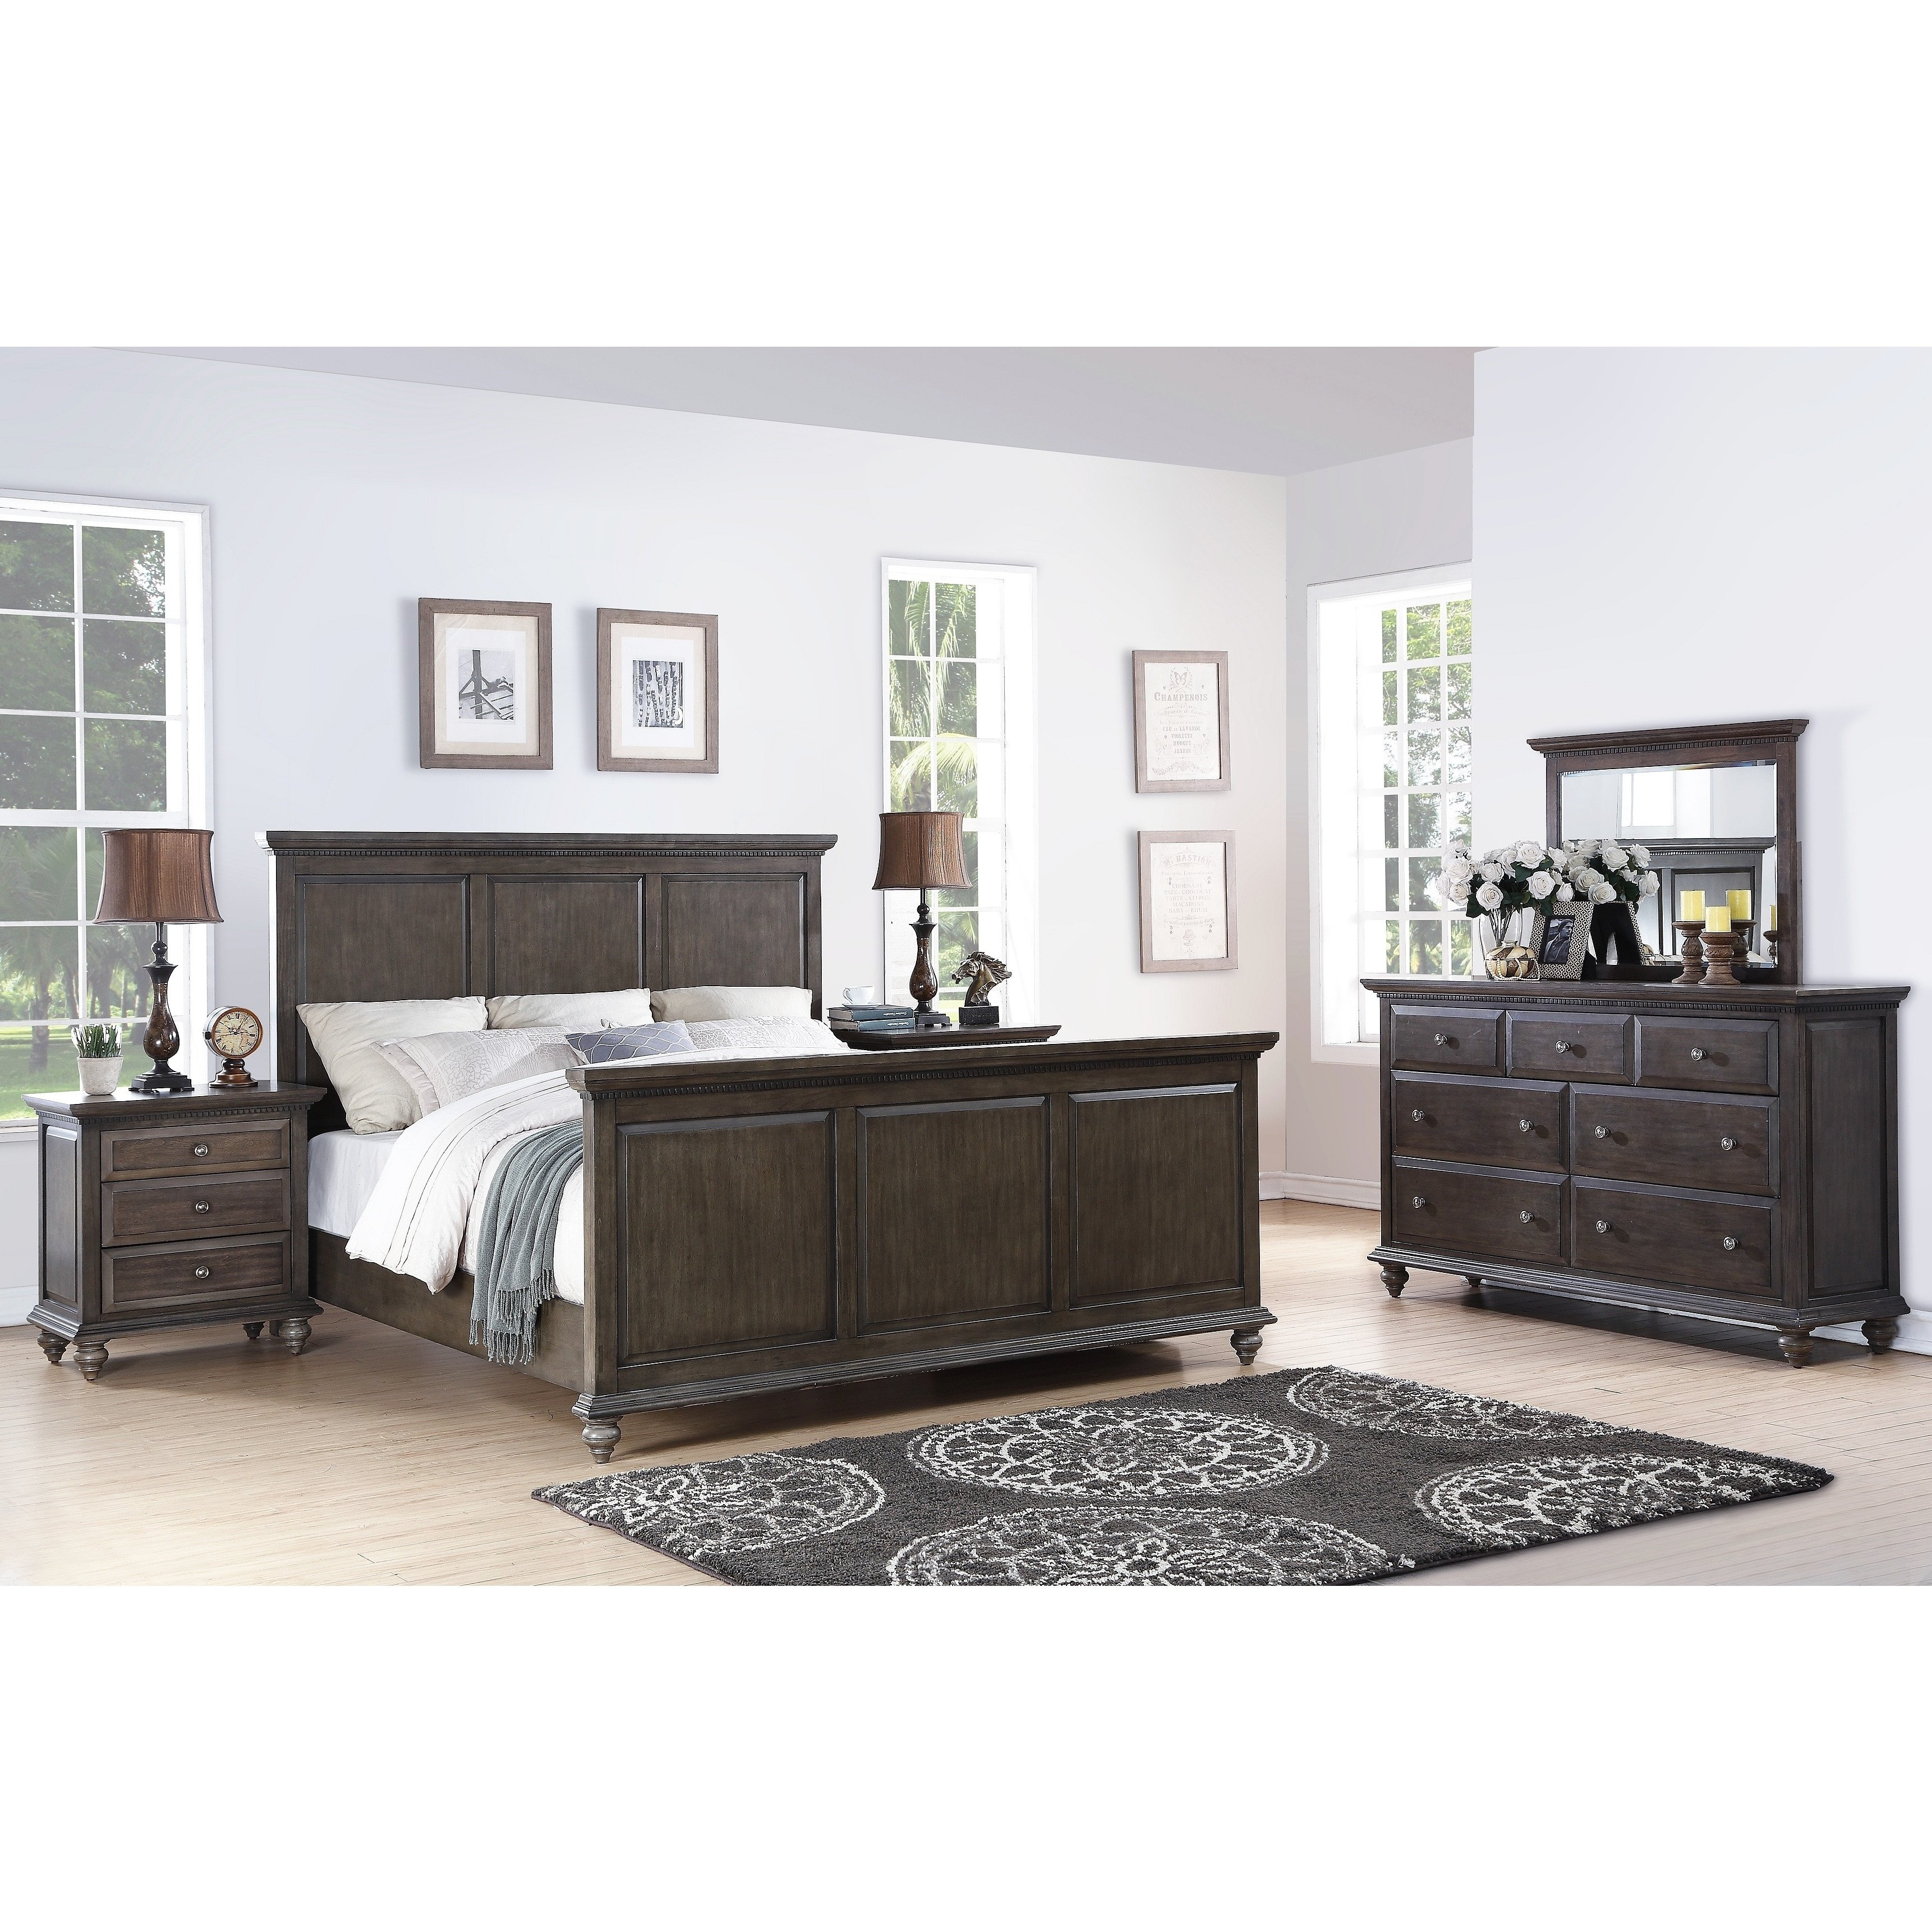 King Size Canopy Bedroom Set New Abbyson Marseilles City Grey 5 Piece Bedroom Set